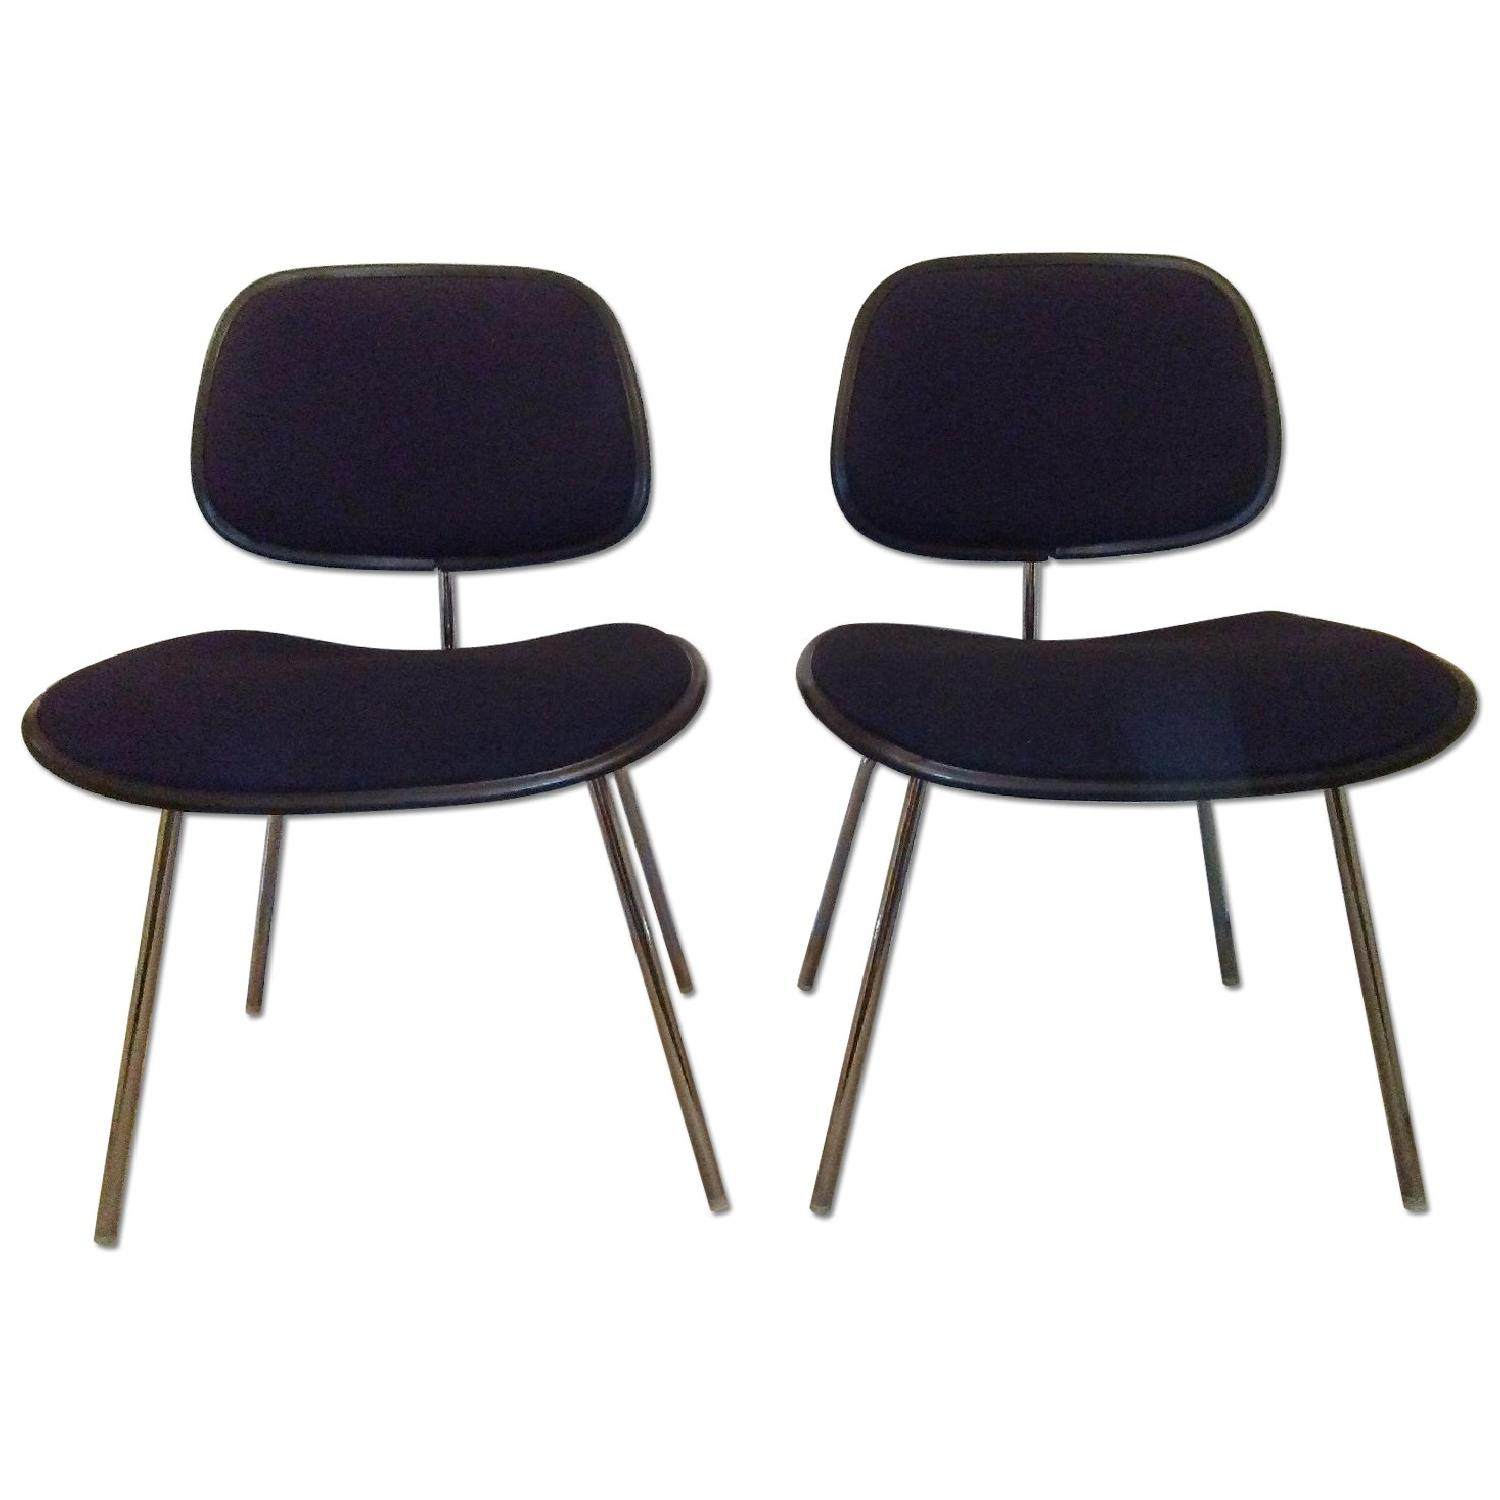 Herman Miller c.1992 Charles Eames Dining/Accent Chairs - image-0